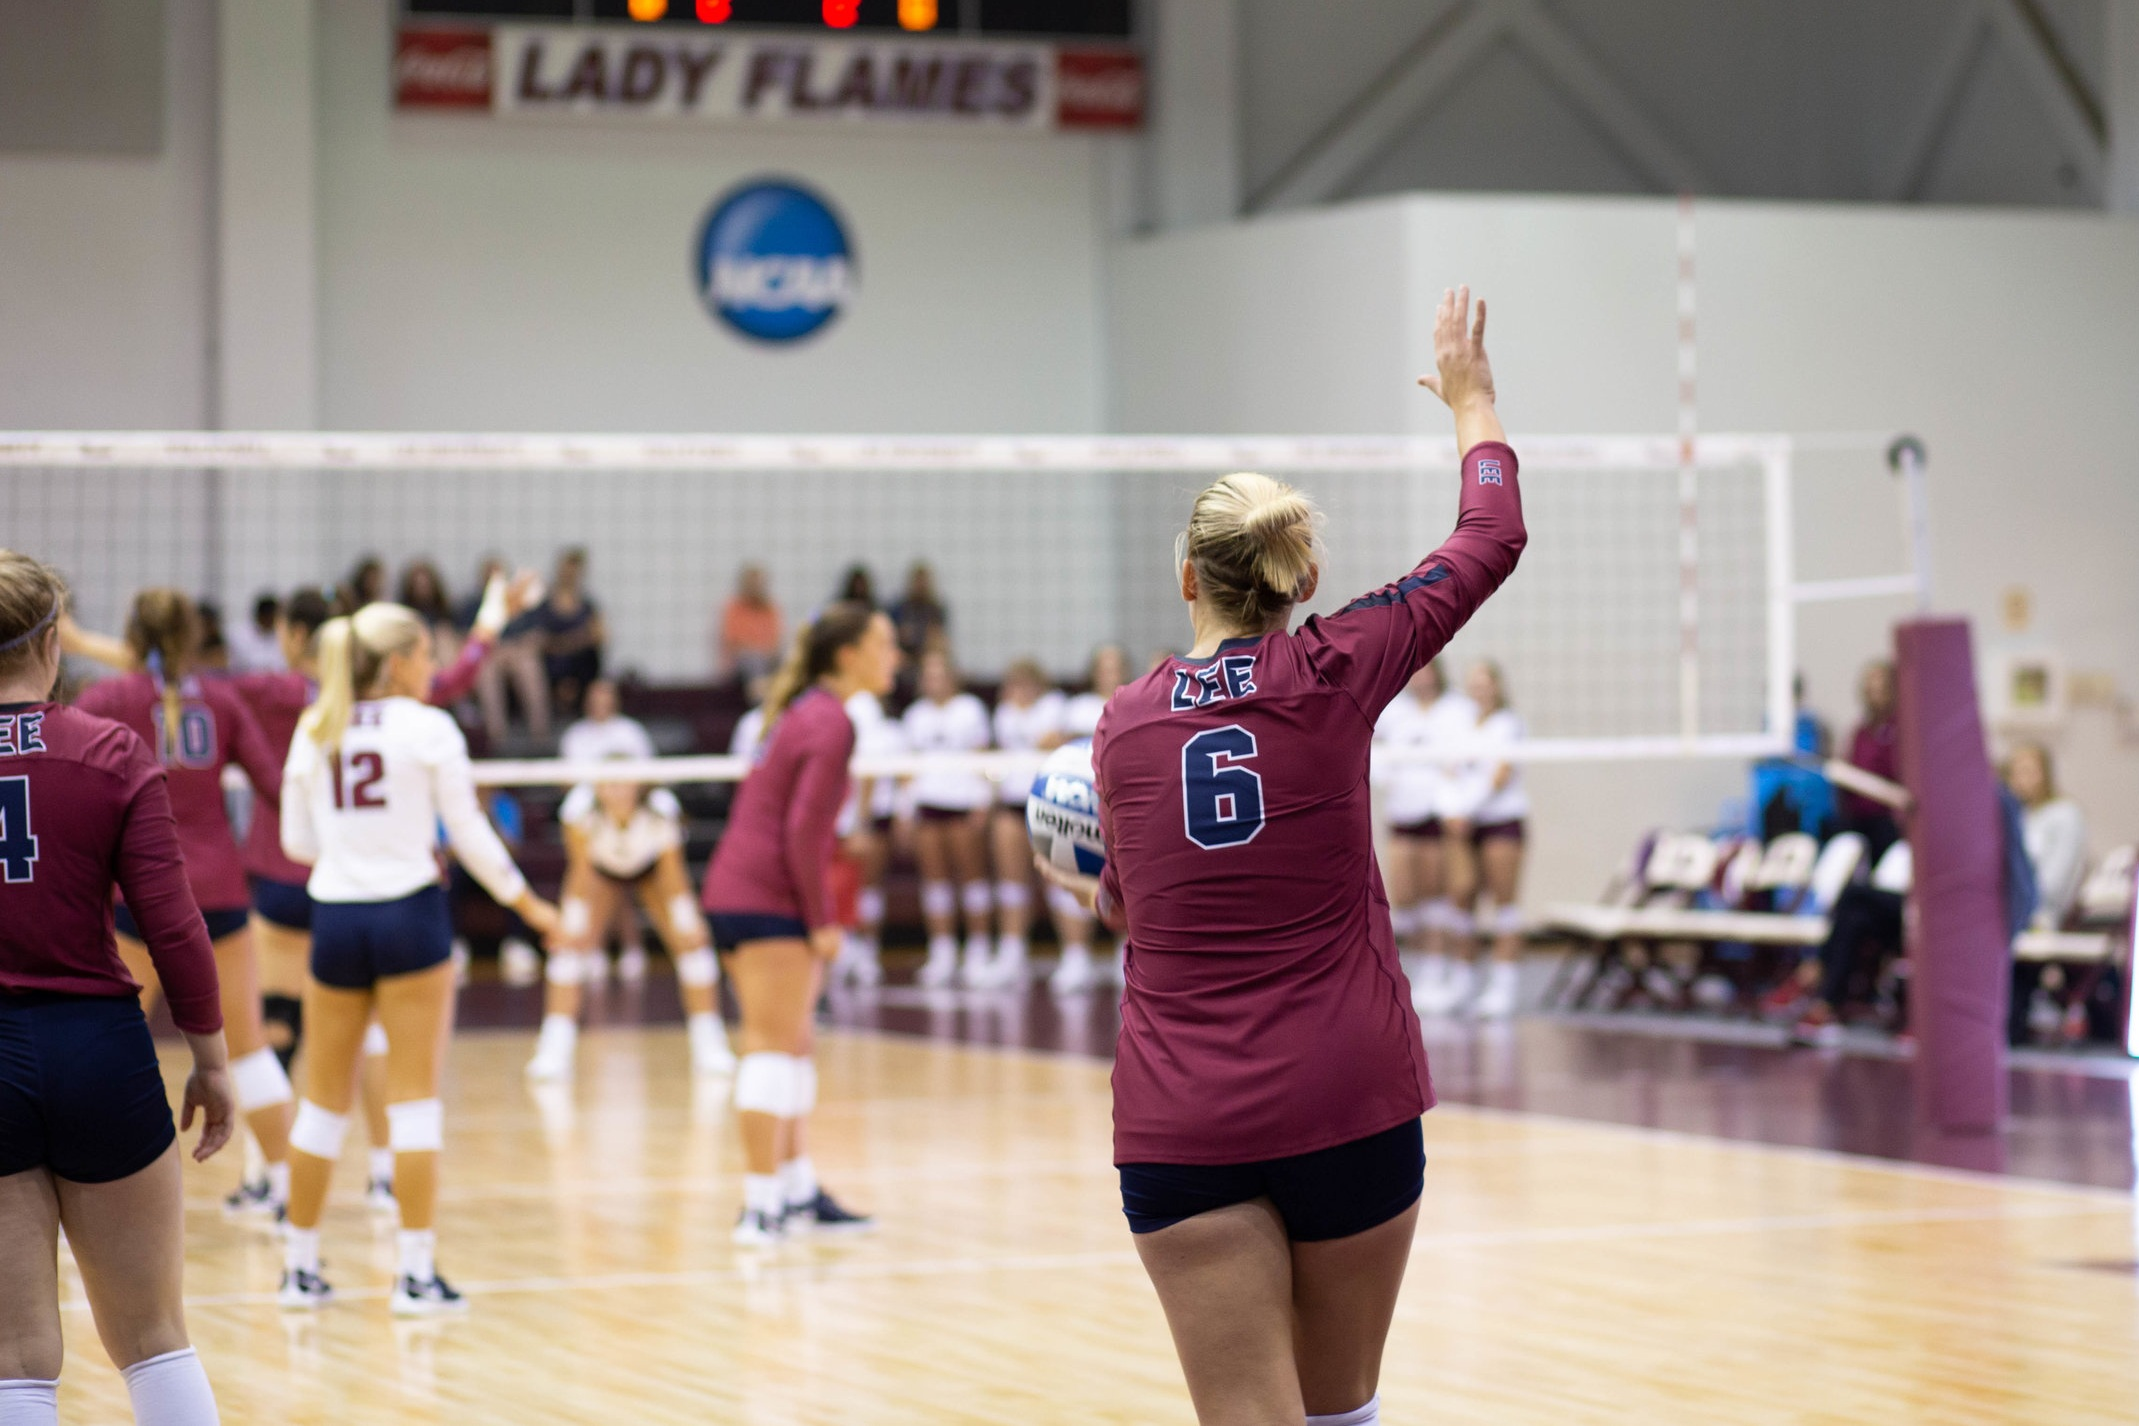 Matthews prepares to serve for the Lady Flames